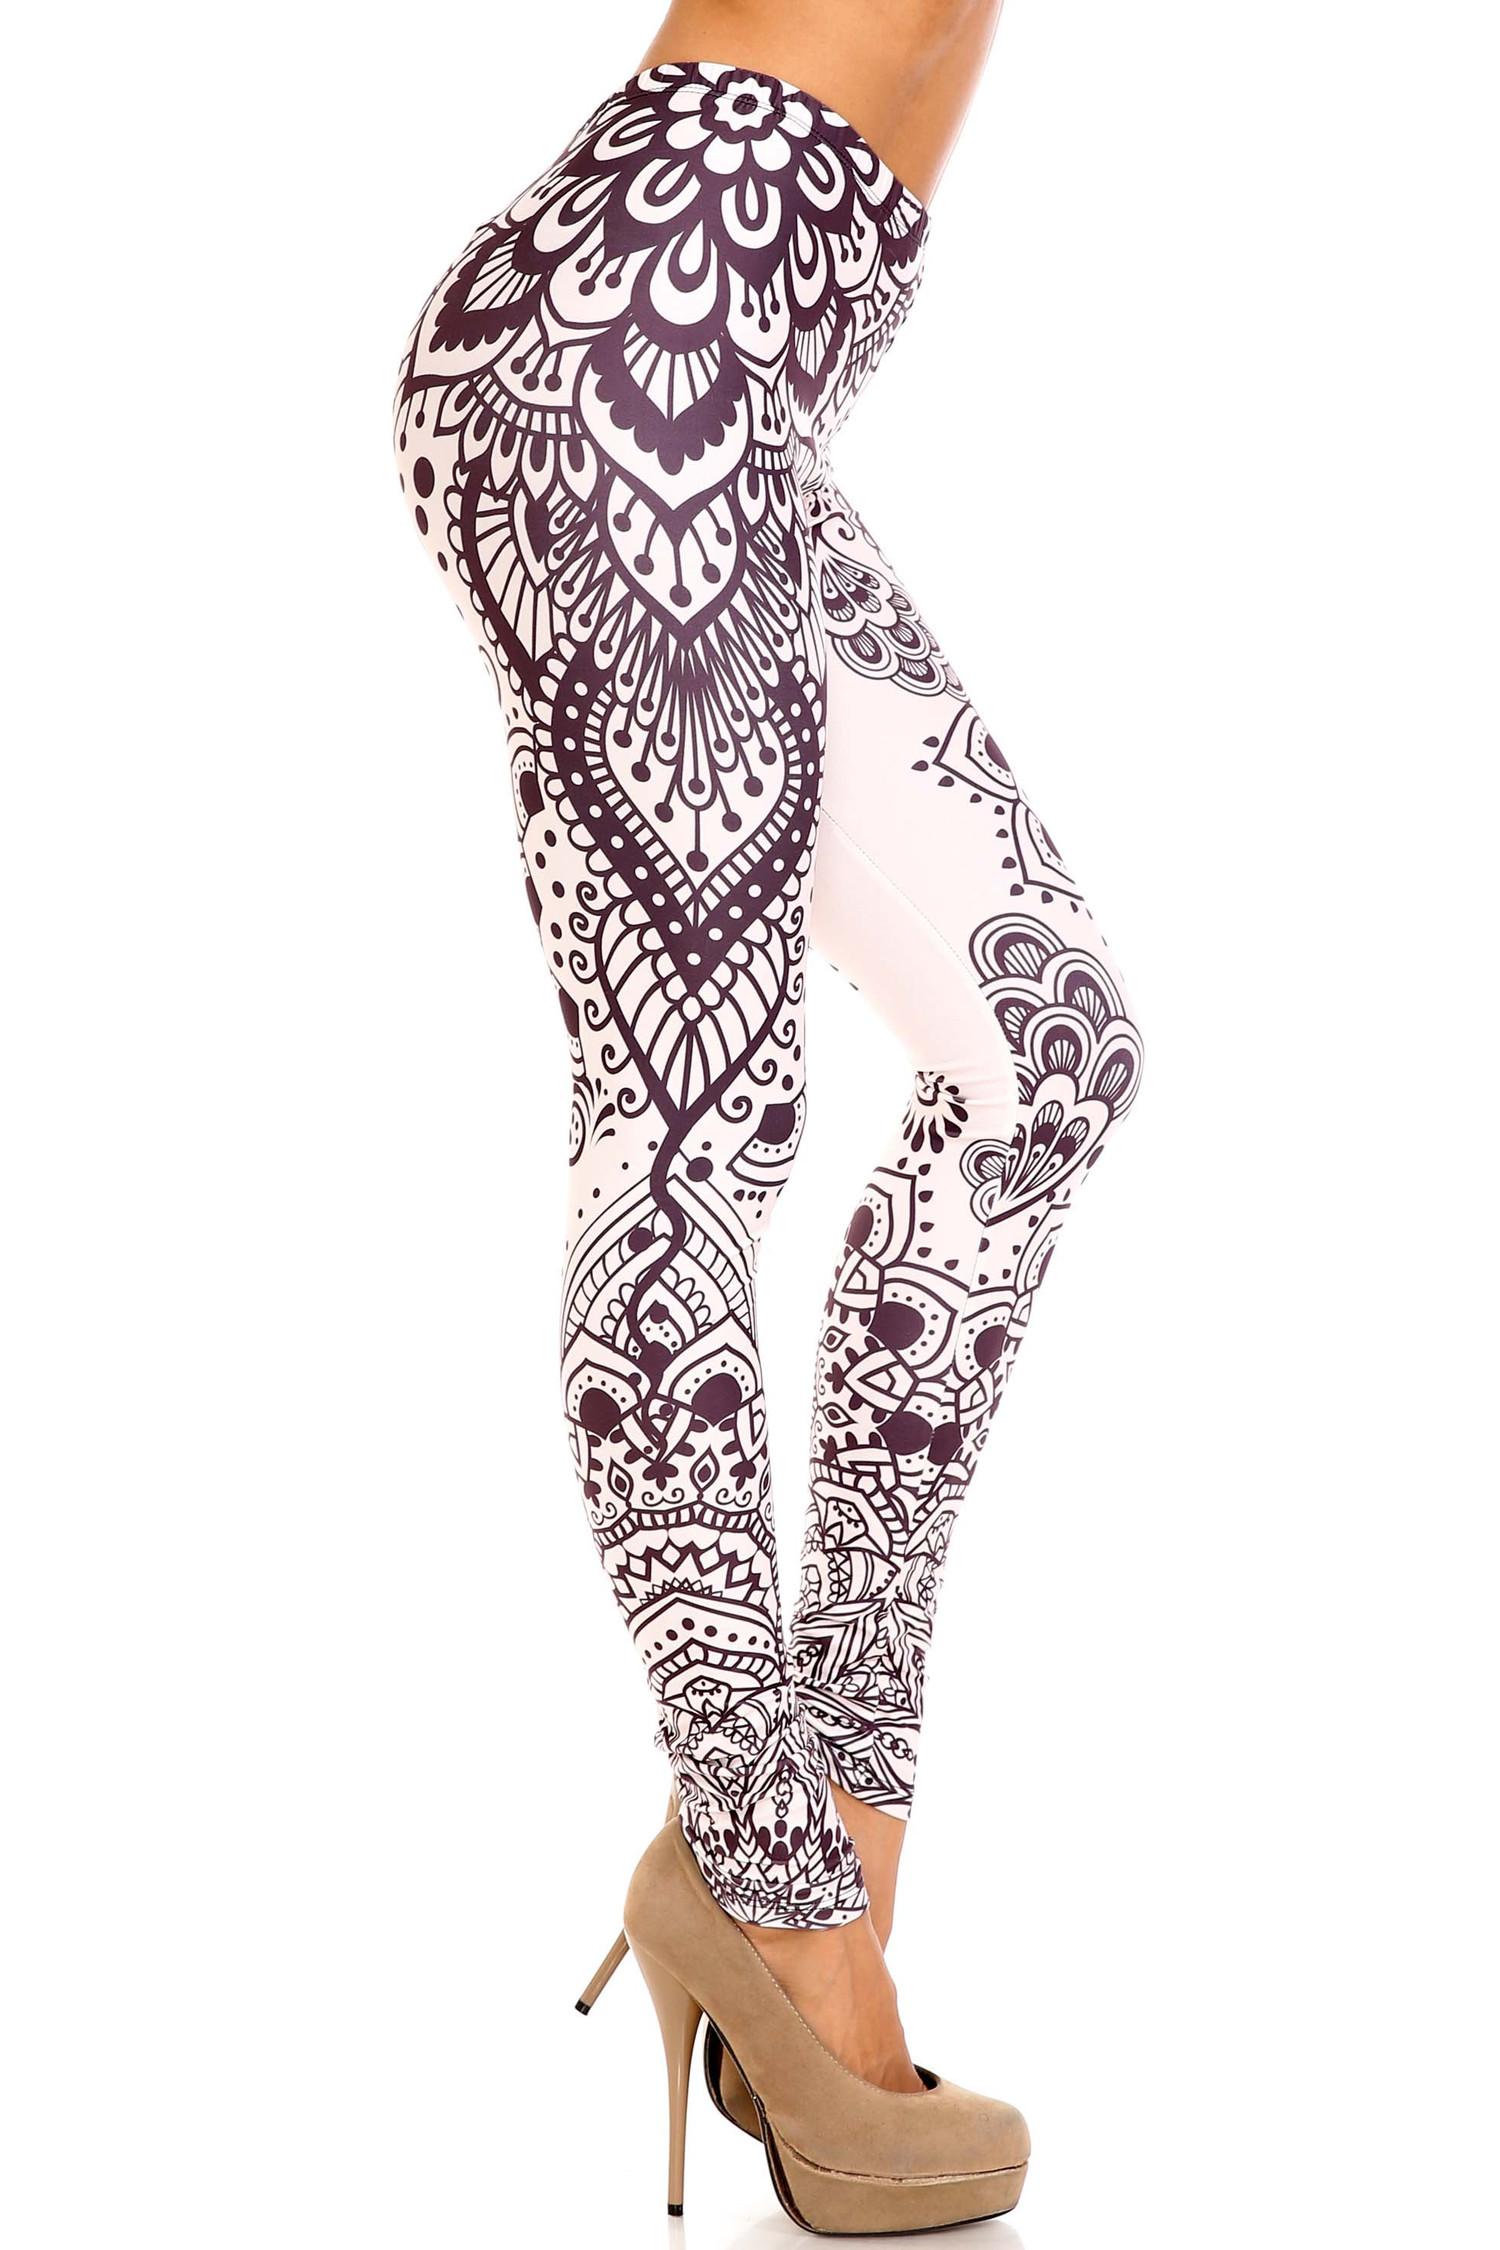 Creamy Soft Creamy Tribal Mandala Extra Plus Size Leggings - 3X-5X - USA Fashion™